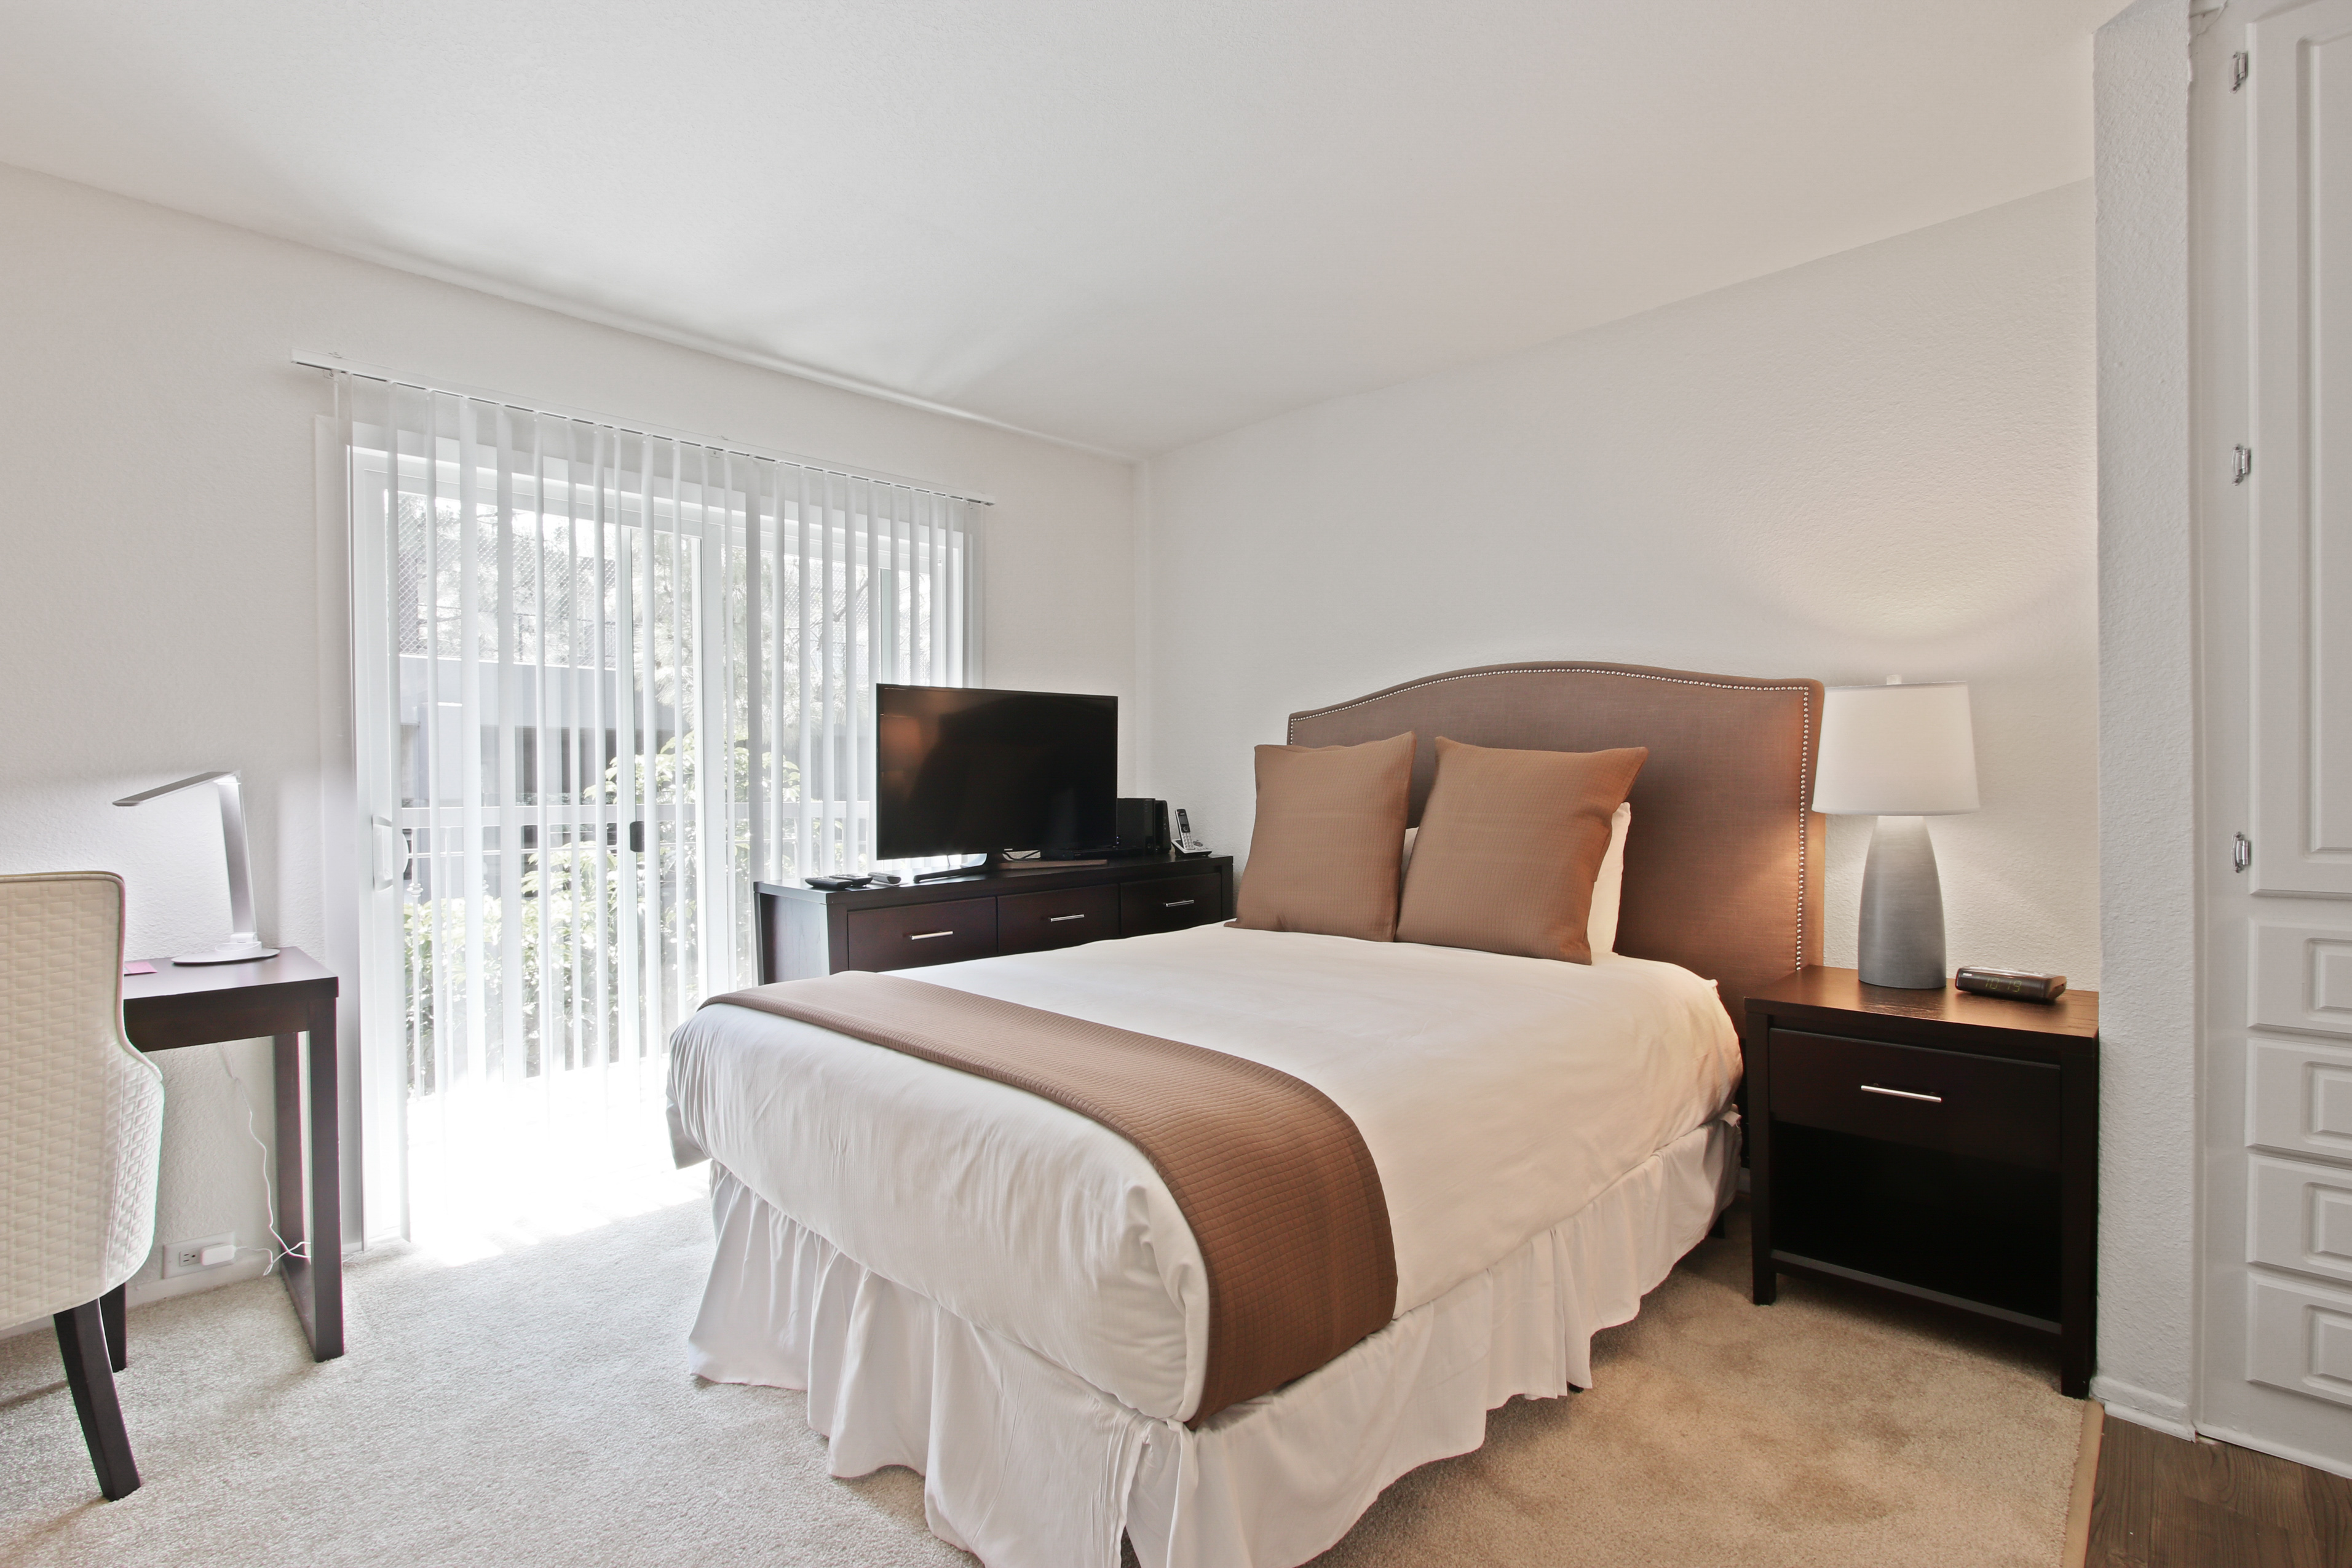 image 4 furnished 1 bedroom Apartment for rent in Hollywood, Metro Los Angeles